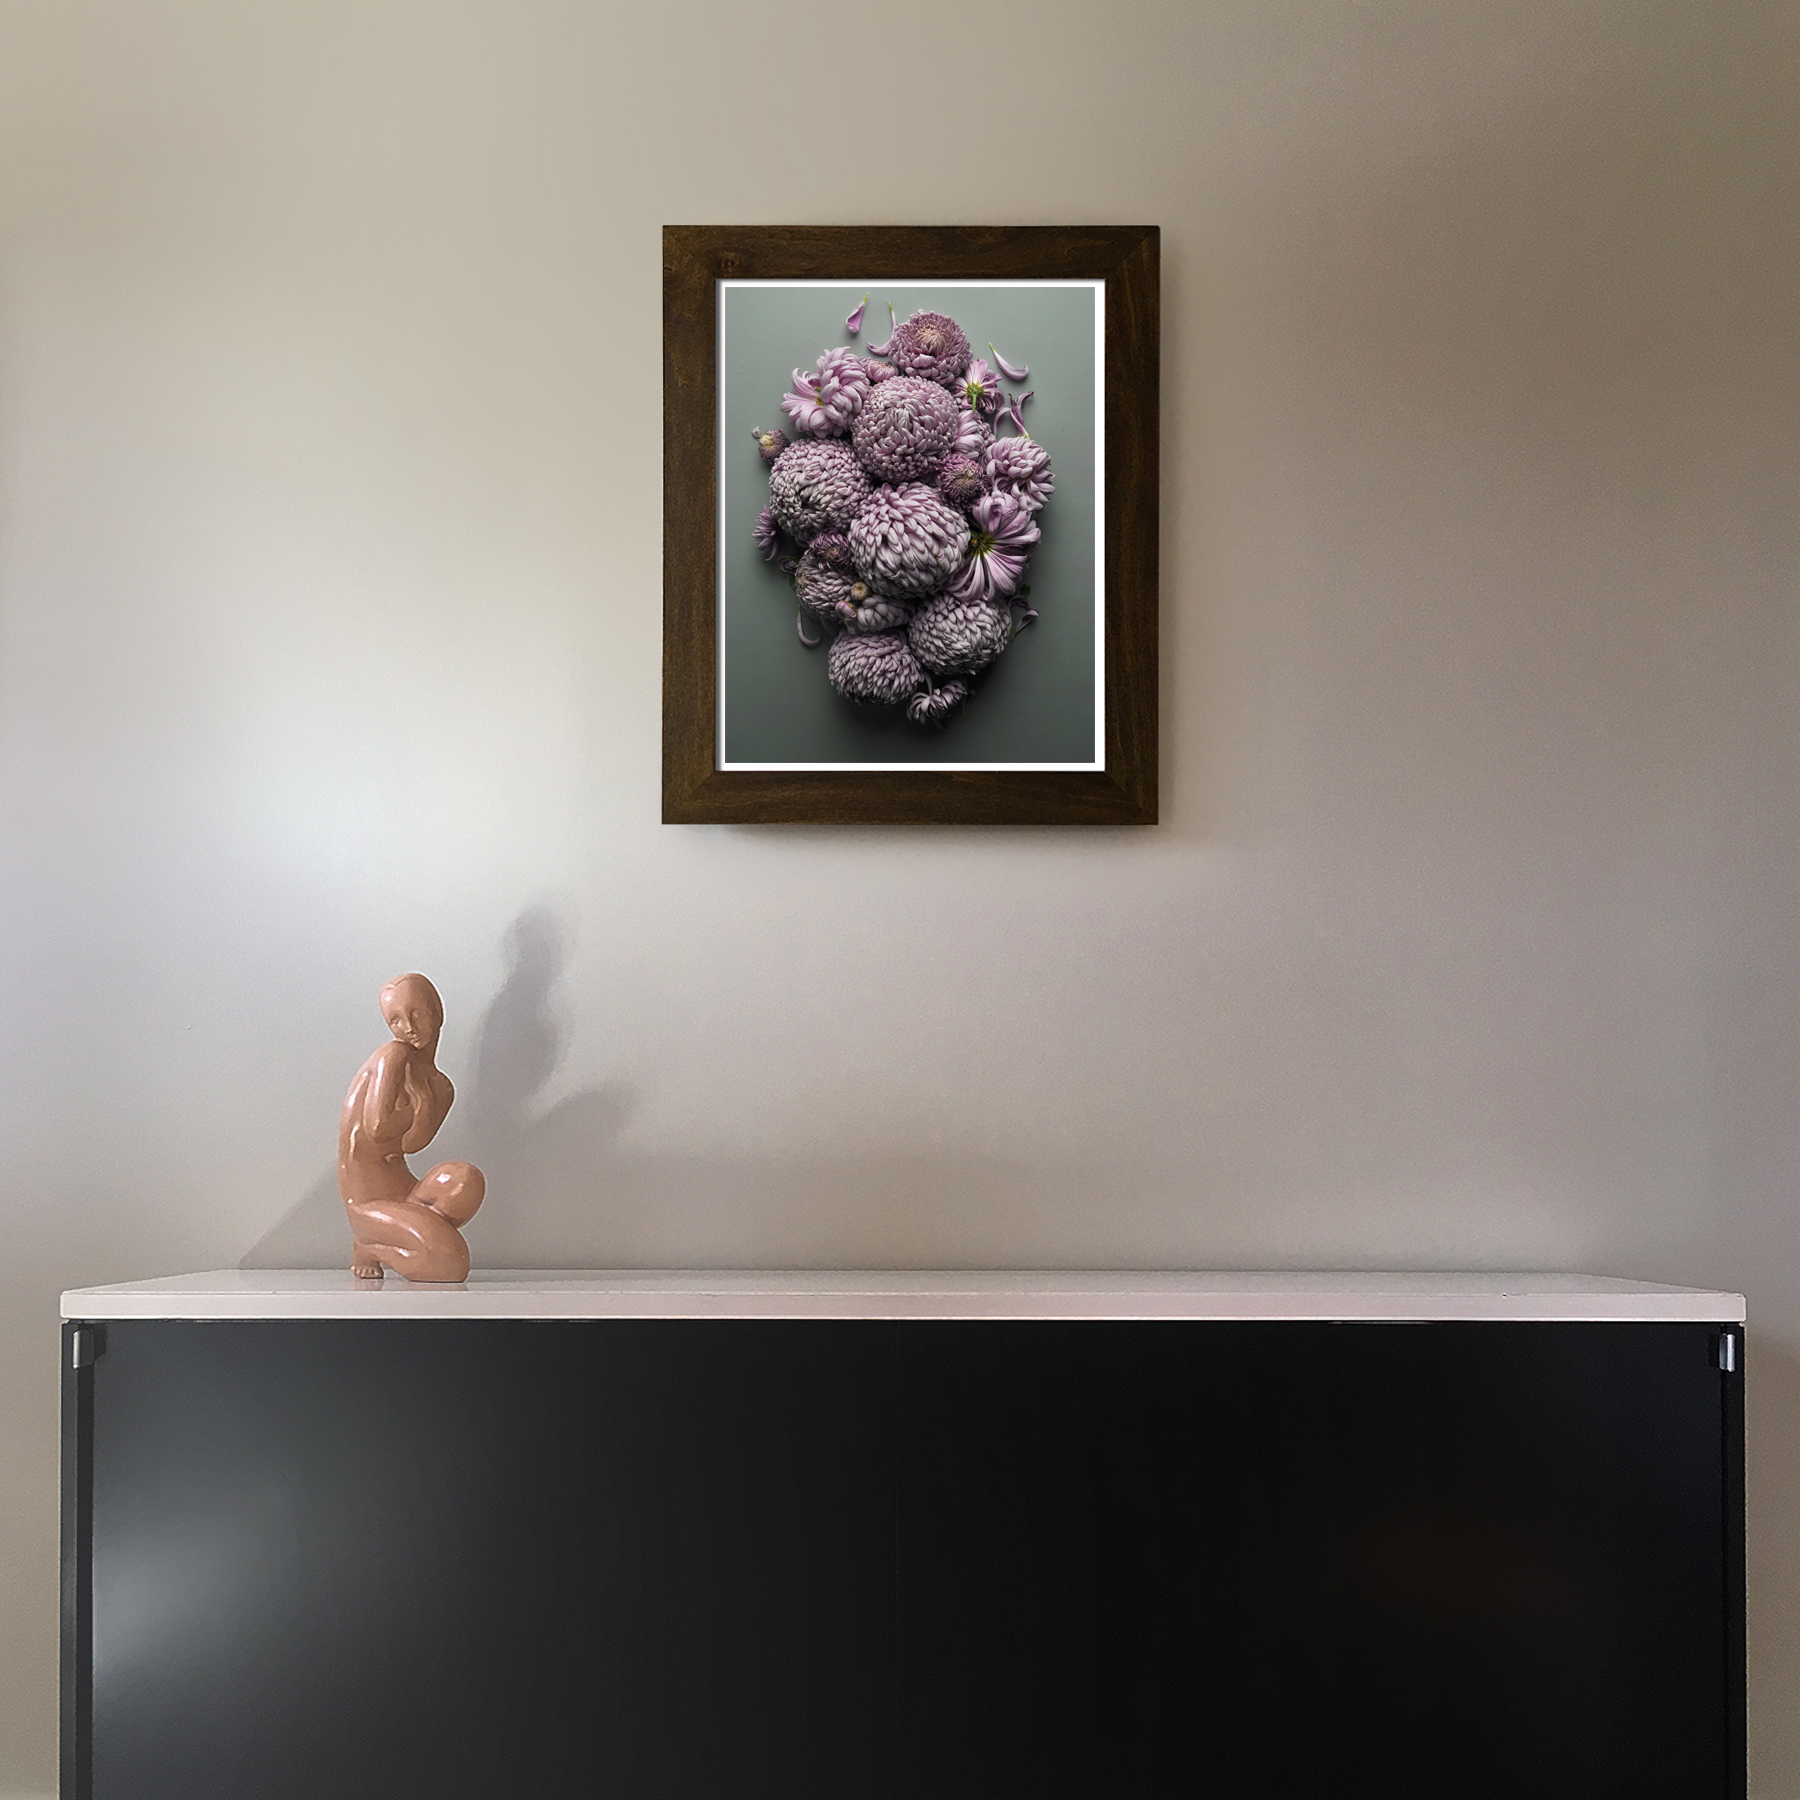 Mums Over the Credenza